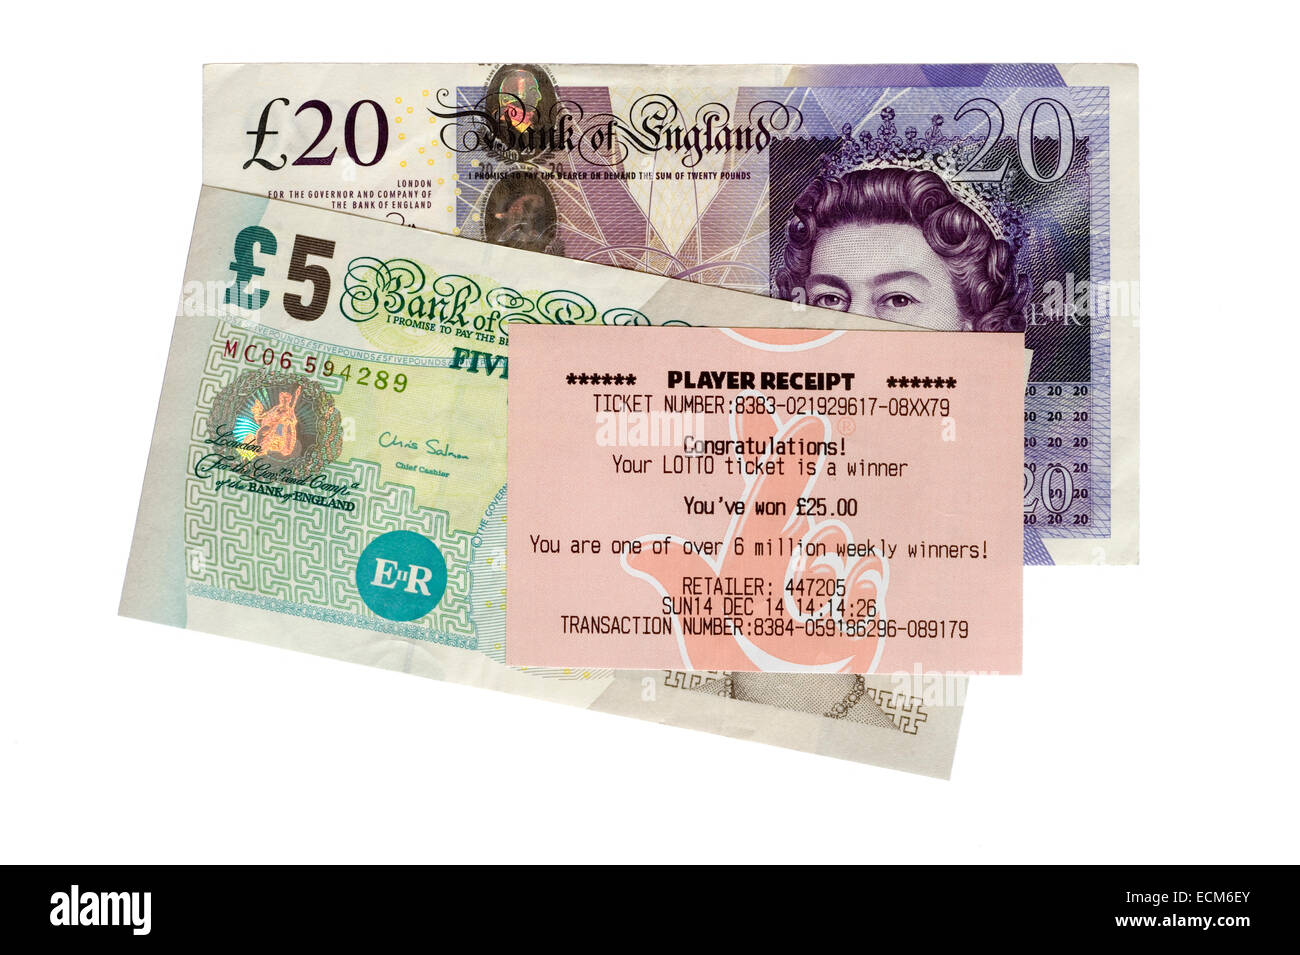 Winning Lottery Stock Photos & Winning Lottery Stock Images - Alamy